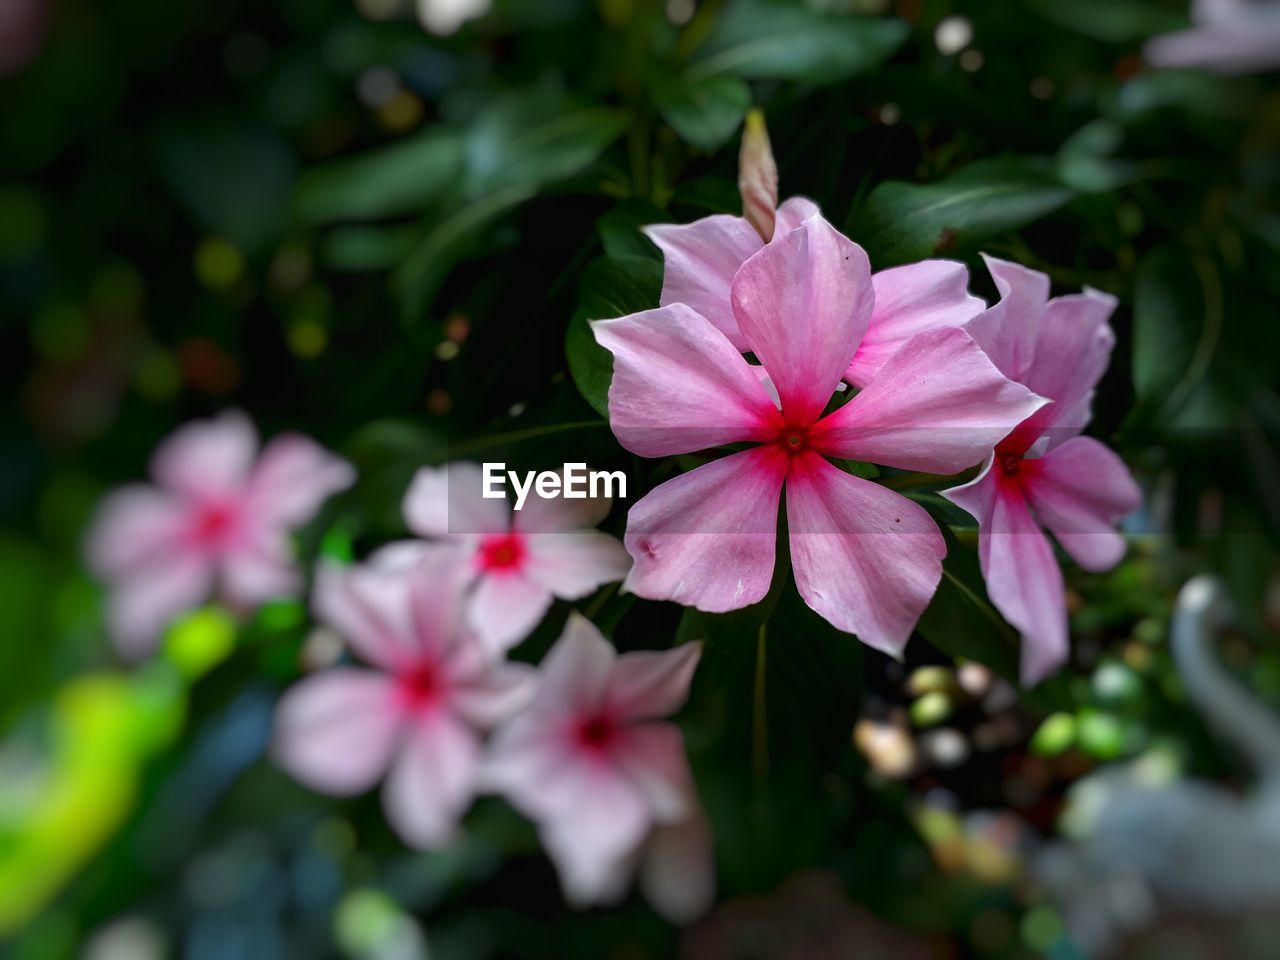 petal, flowering plant, flower, plant, beauty in nature, freshness, pink color, fragility, growth, flower head, vulnerability, inflorescence, close-up, nature, day, no people, focus on foreground, outdoors, plant part, botany